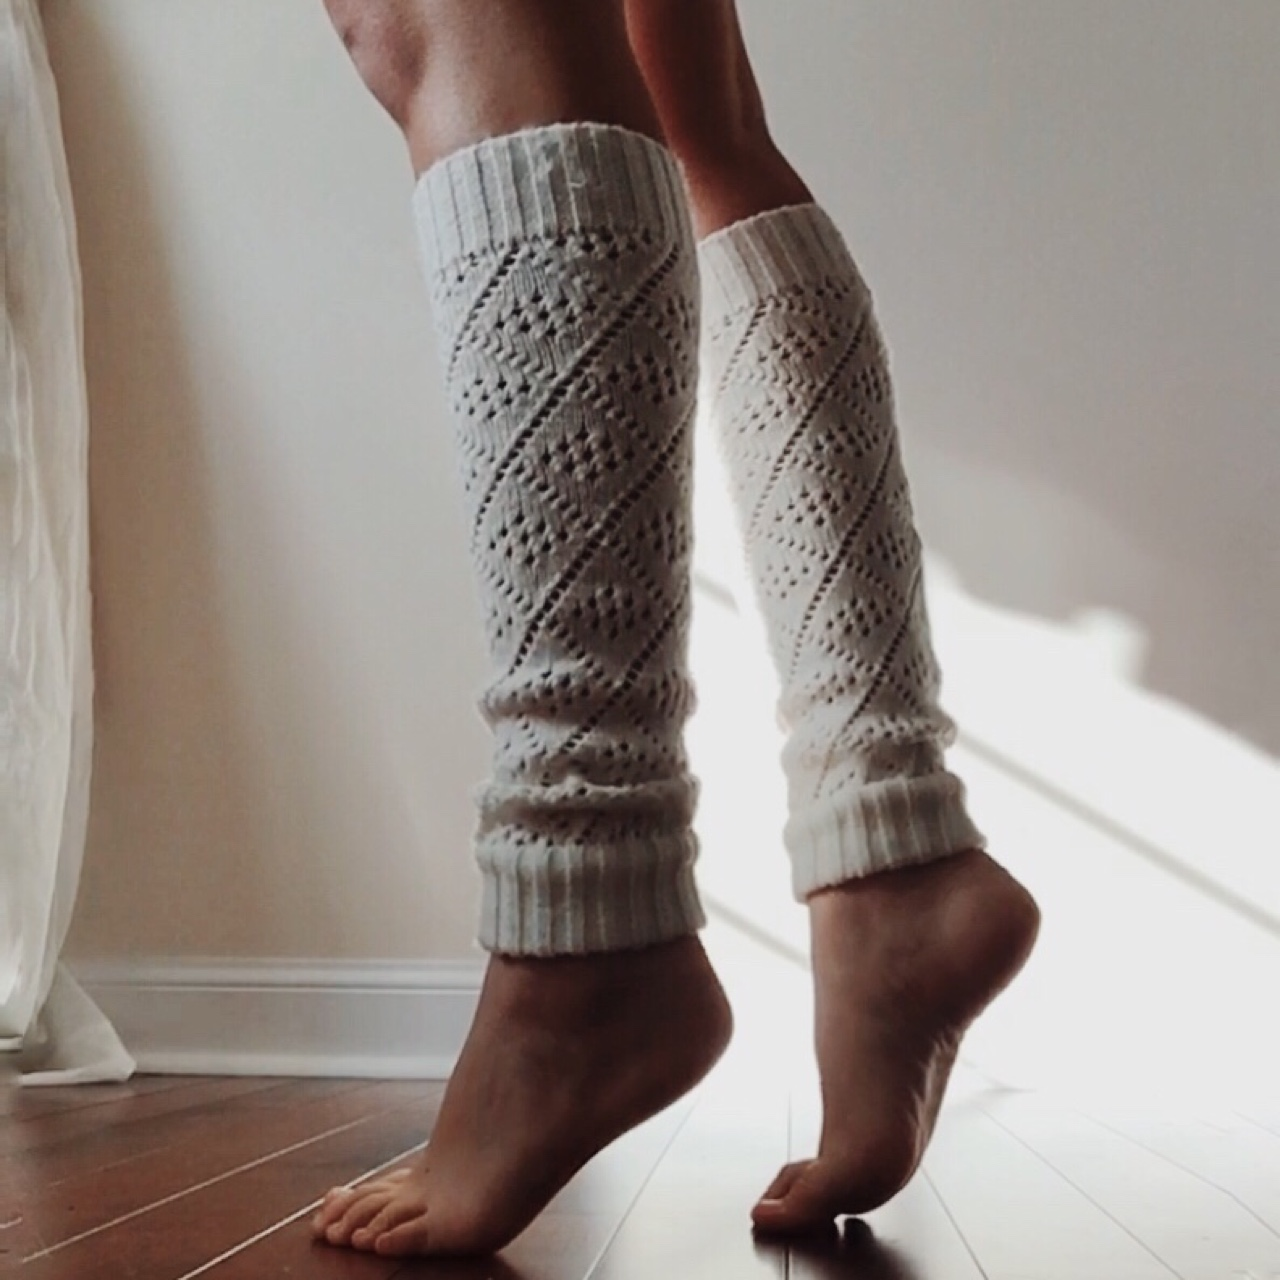 Knit leg warmers  Light cream color  In perfect    - Depop